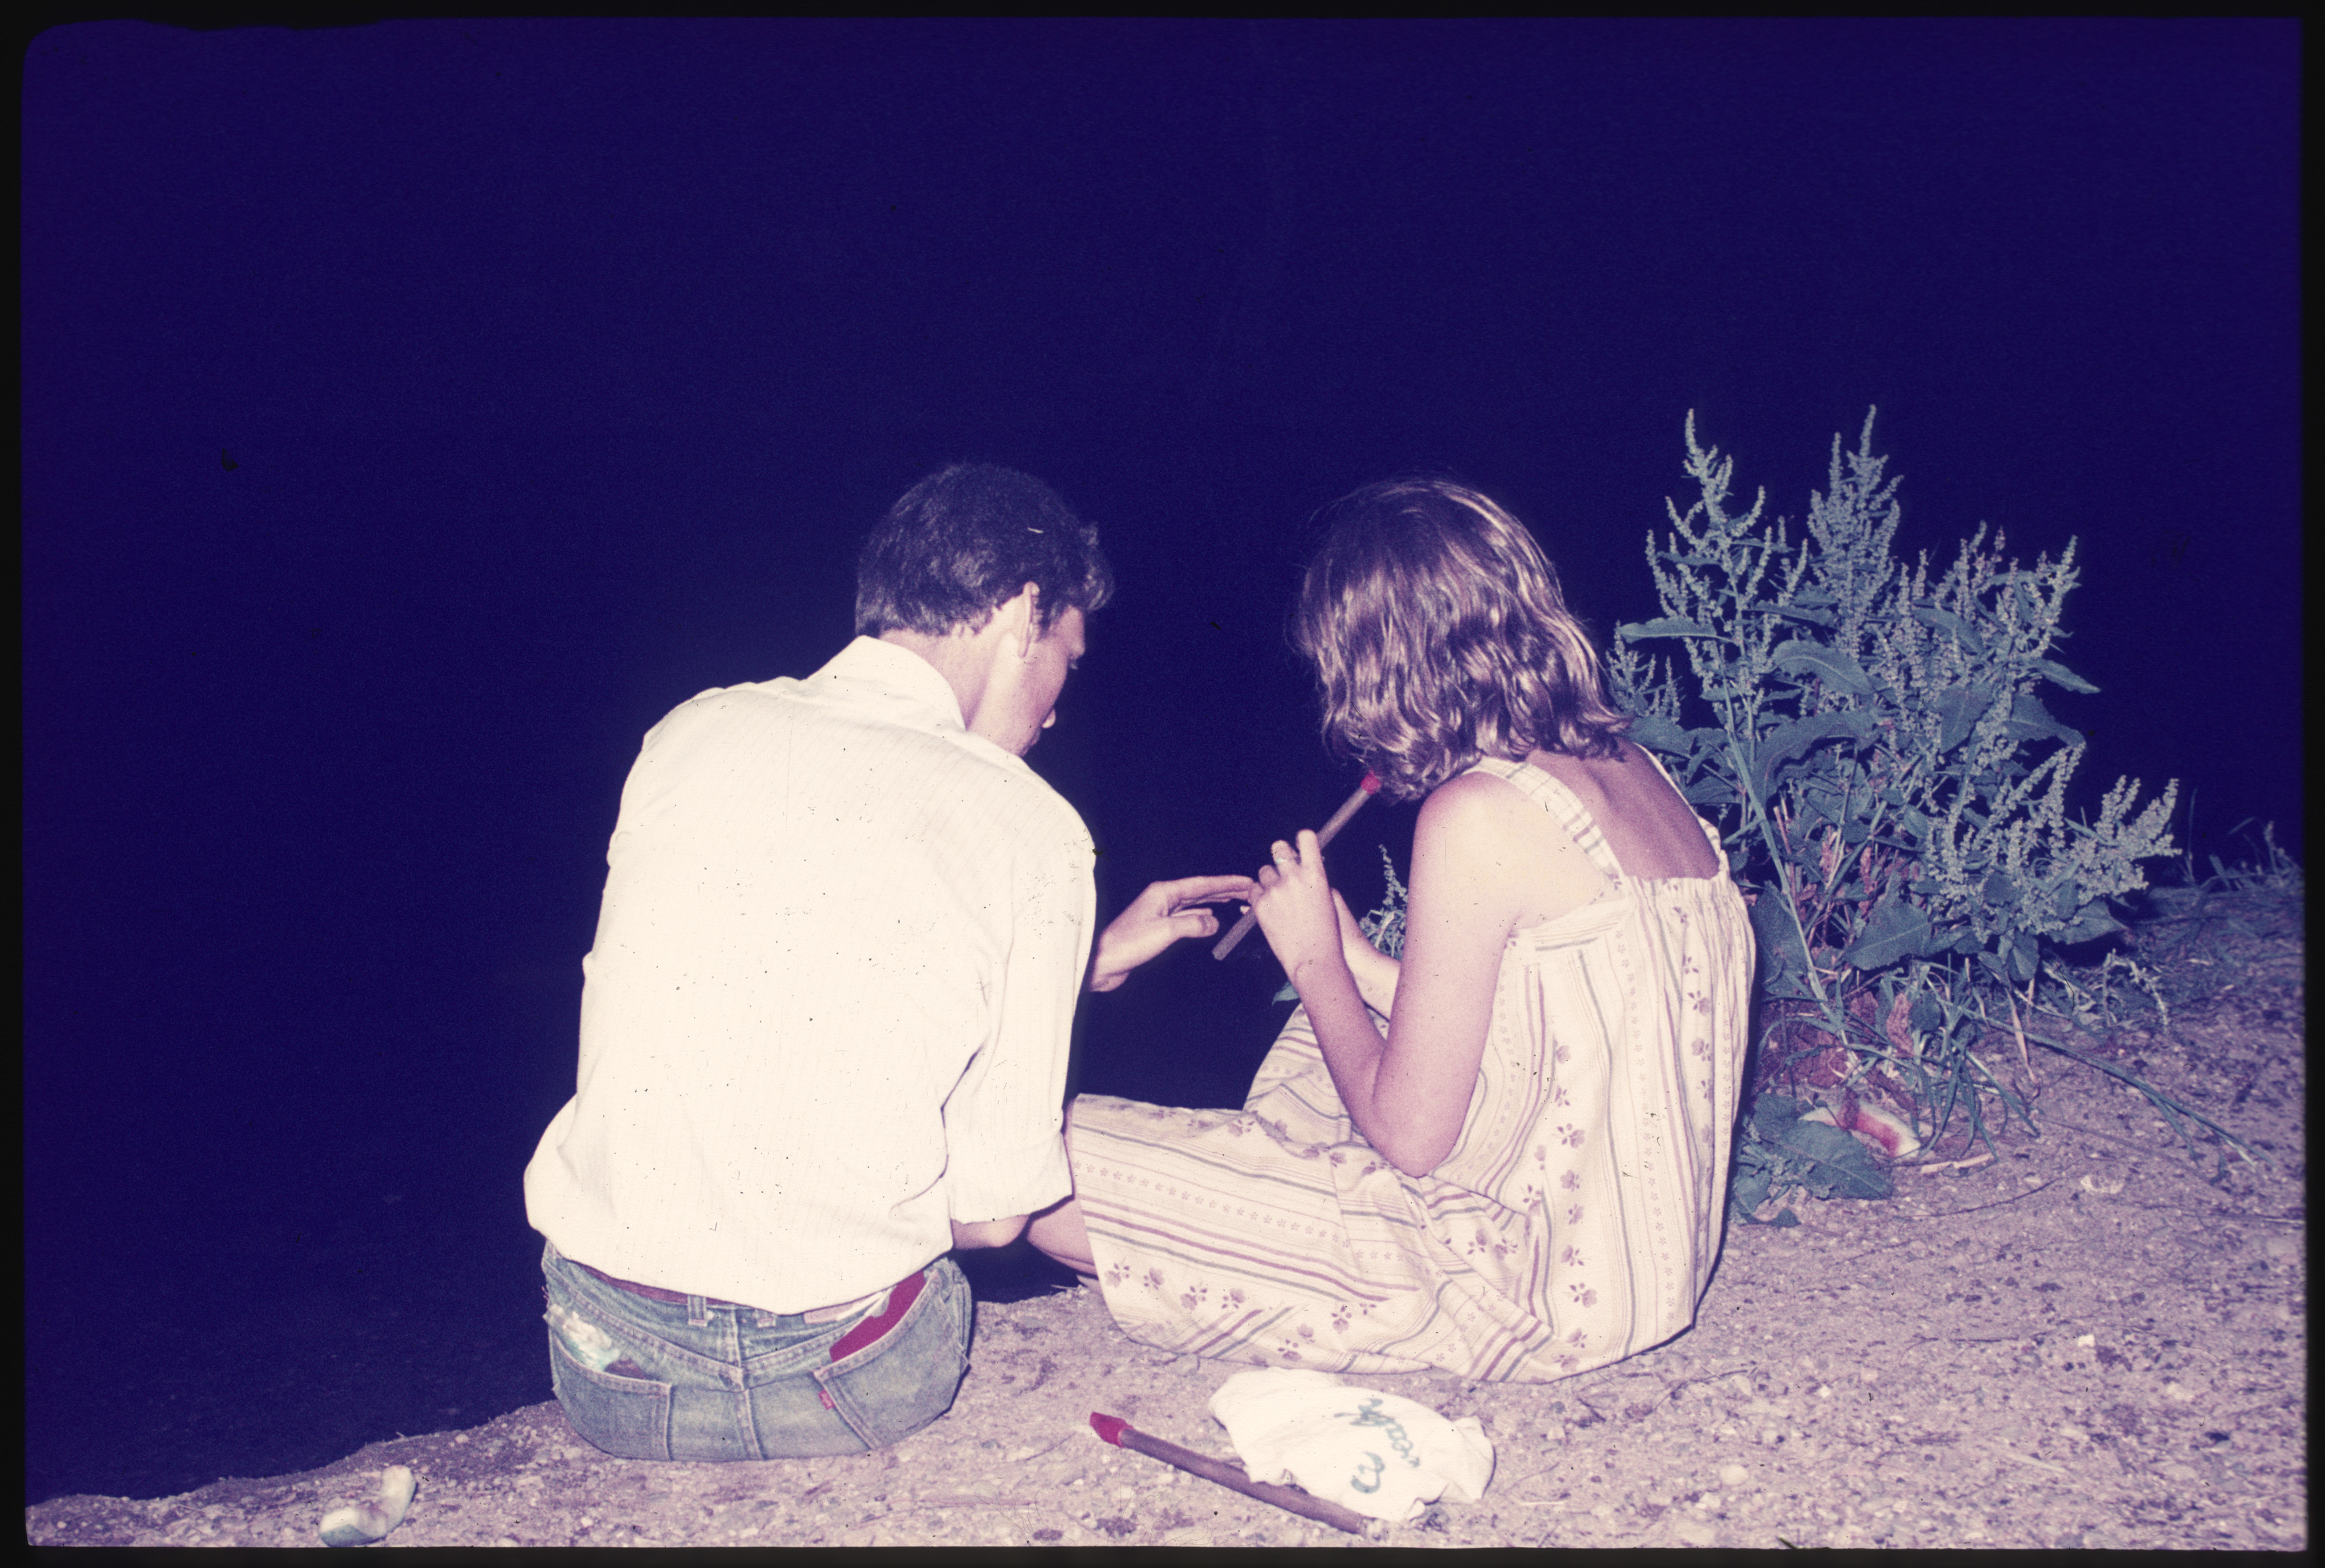 A man shows a woman how to play a pennywhistle while sitting on the bank of a river at night